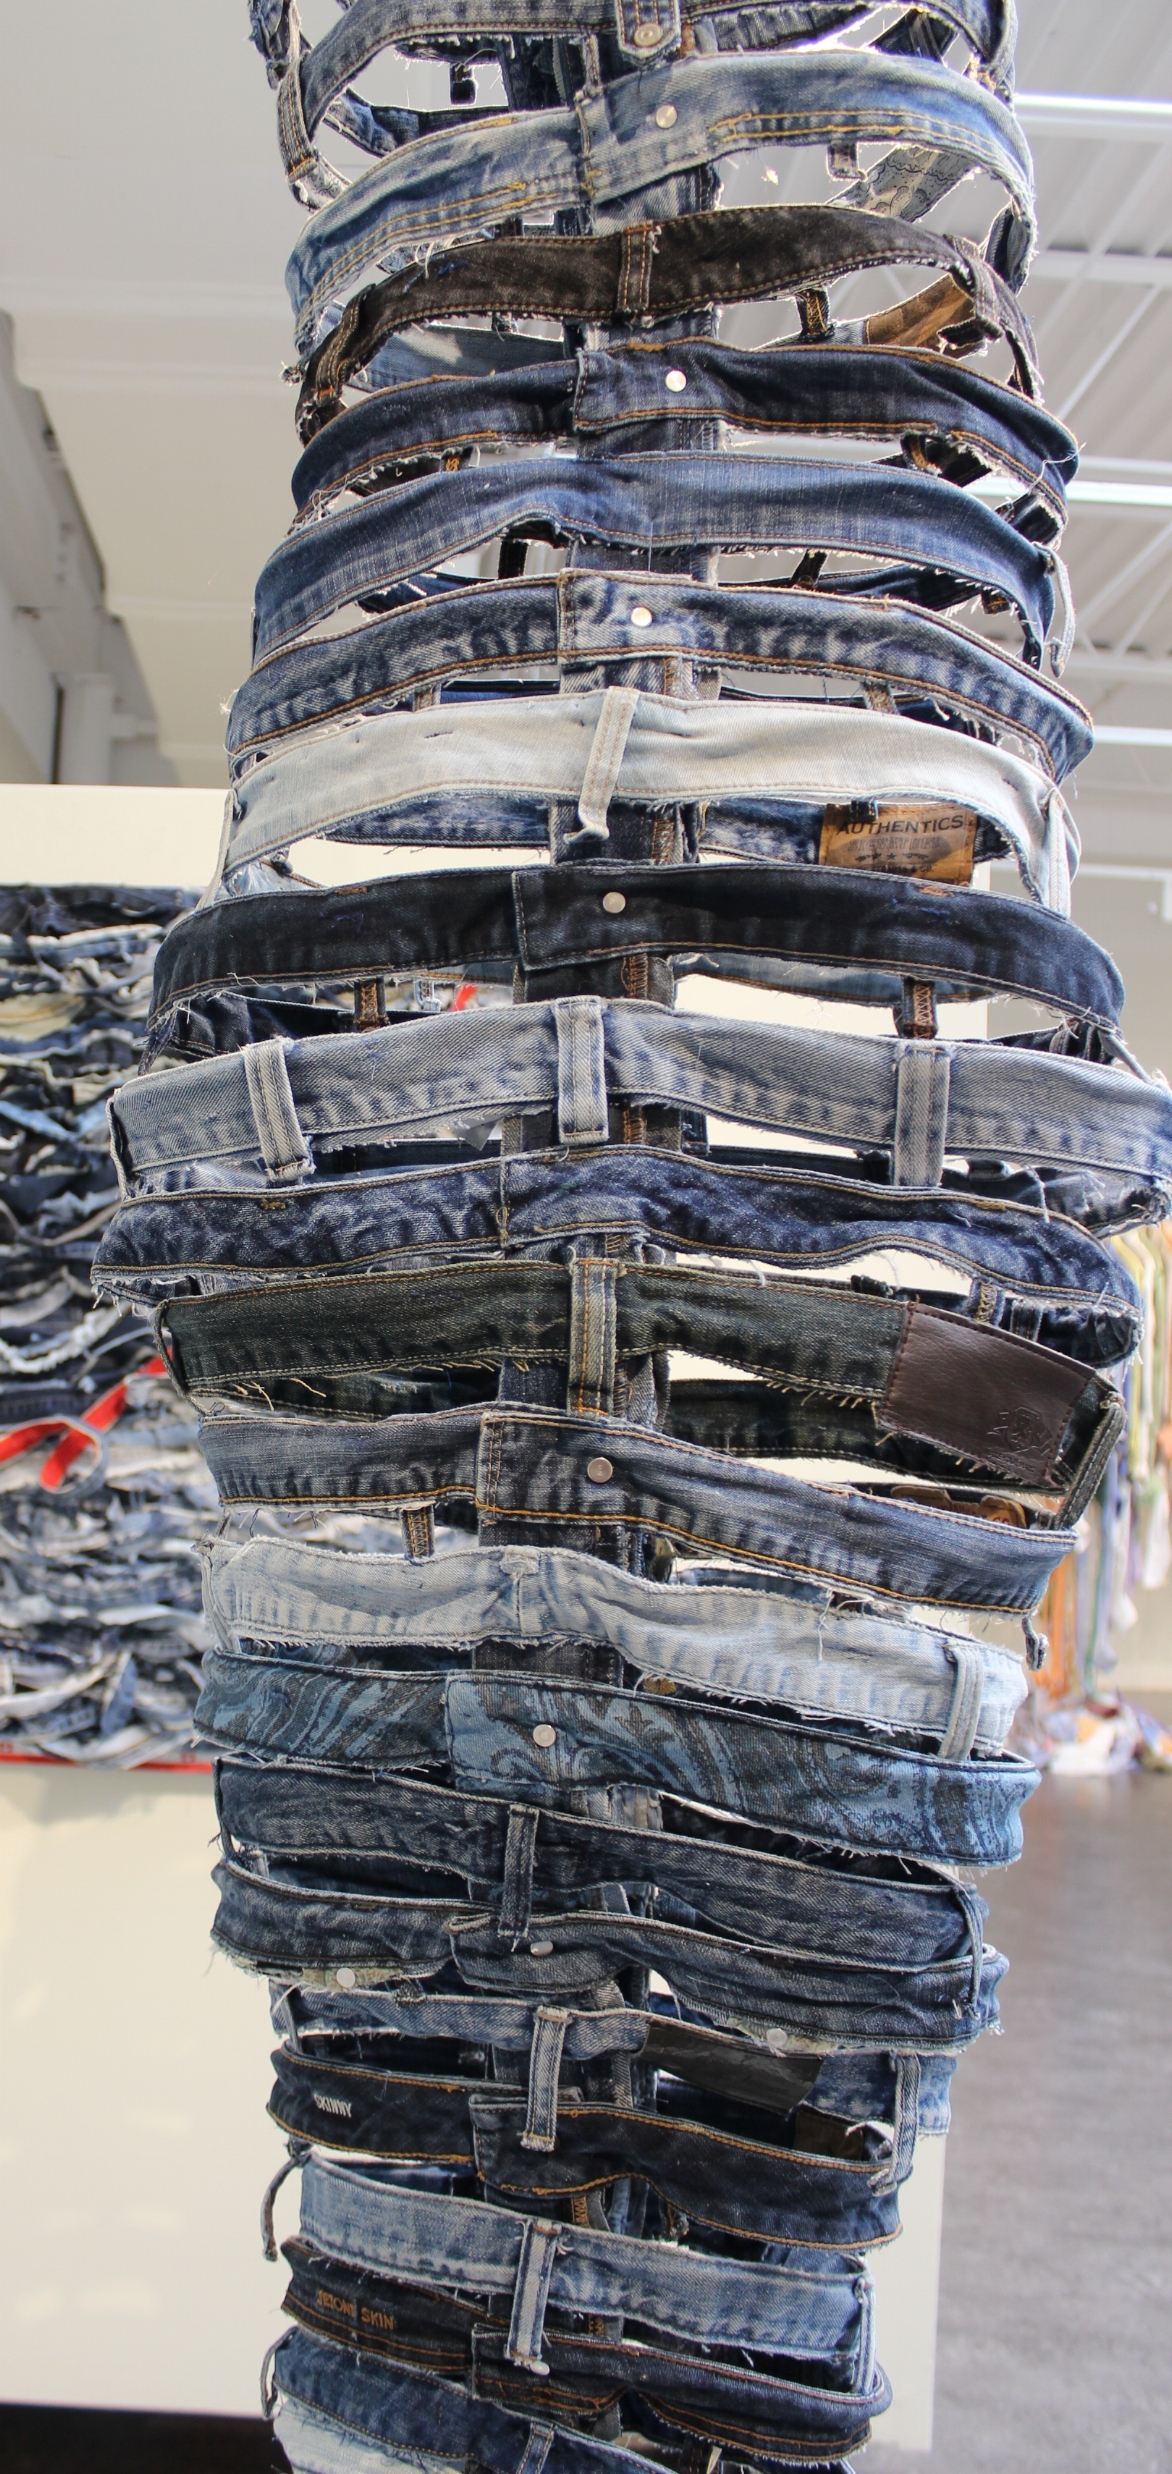 When did jeans become fast fashion? (detail)